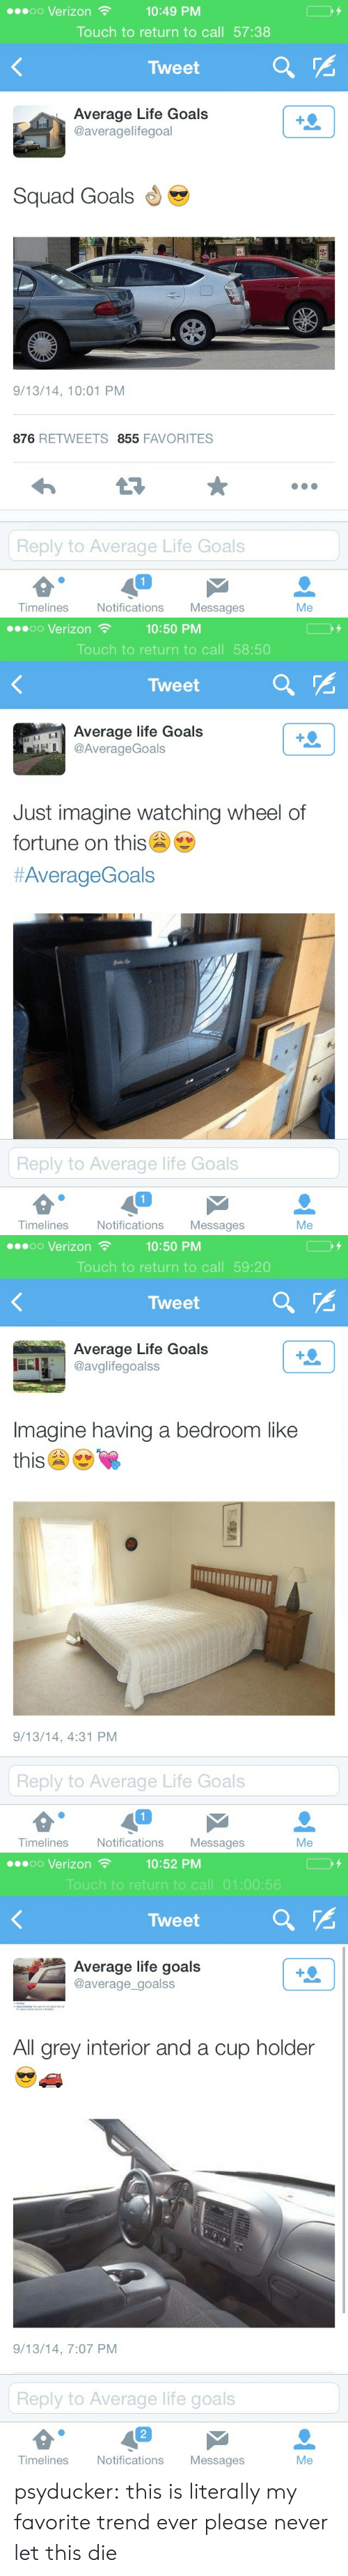 Goals, Life, and Squad: 10:49 PM  Touch to return to call 57:38  oo Verizon  Tweet  Average Life Goals  @averagelifegoal  Squad Goals  9/13/14, 10:01 PM  876 RETWEETS 855 FAVORITES  Reply to Average Life Goals  1  Timelines  Notifications Messages  Me   oo Verizon  10:50 PM  Touch to return to call 58:50  Tweet  Average life Goals  @AverageGoals  Just imagine watching wheel of  fortune on this  #AverageGoals  Reply to Average life Goals  1  Timelines  Notifications Messages  Me   10:50 PM  Touch to return to call 59:20  oo Verizon  Tweet  Average Life Goals  avglifegoalss  Imagine having a bedroom like  this  9/13/14, 4:31 PM  Reply to Average Life Goals  1  Timelines  Notifications Messages  Me   oo Verizon  10:52 PM  Touch to return to call 01:00:56  Tweet  Average life goals  @average_goalss  All grey interior and a cup holder  9/13/14, 7:07 PM  Reply to Average life goals  2  Timelines  Notifications Messages  Me psyducker:  this is literally my favorite trend ever please never let this die